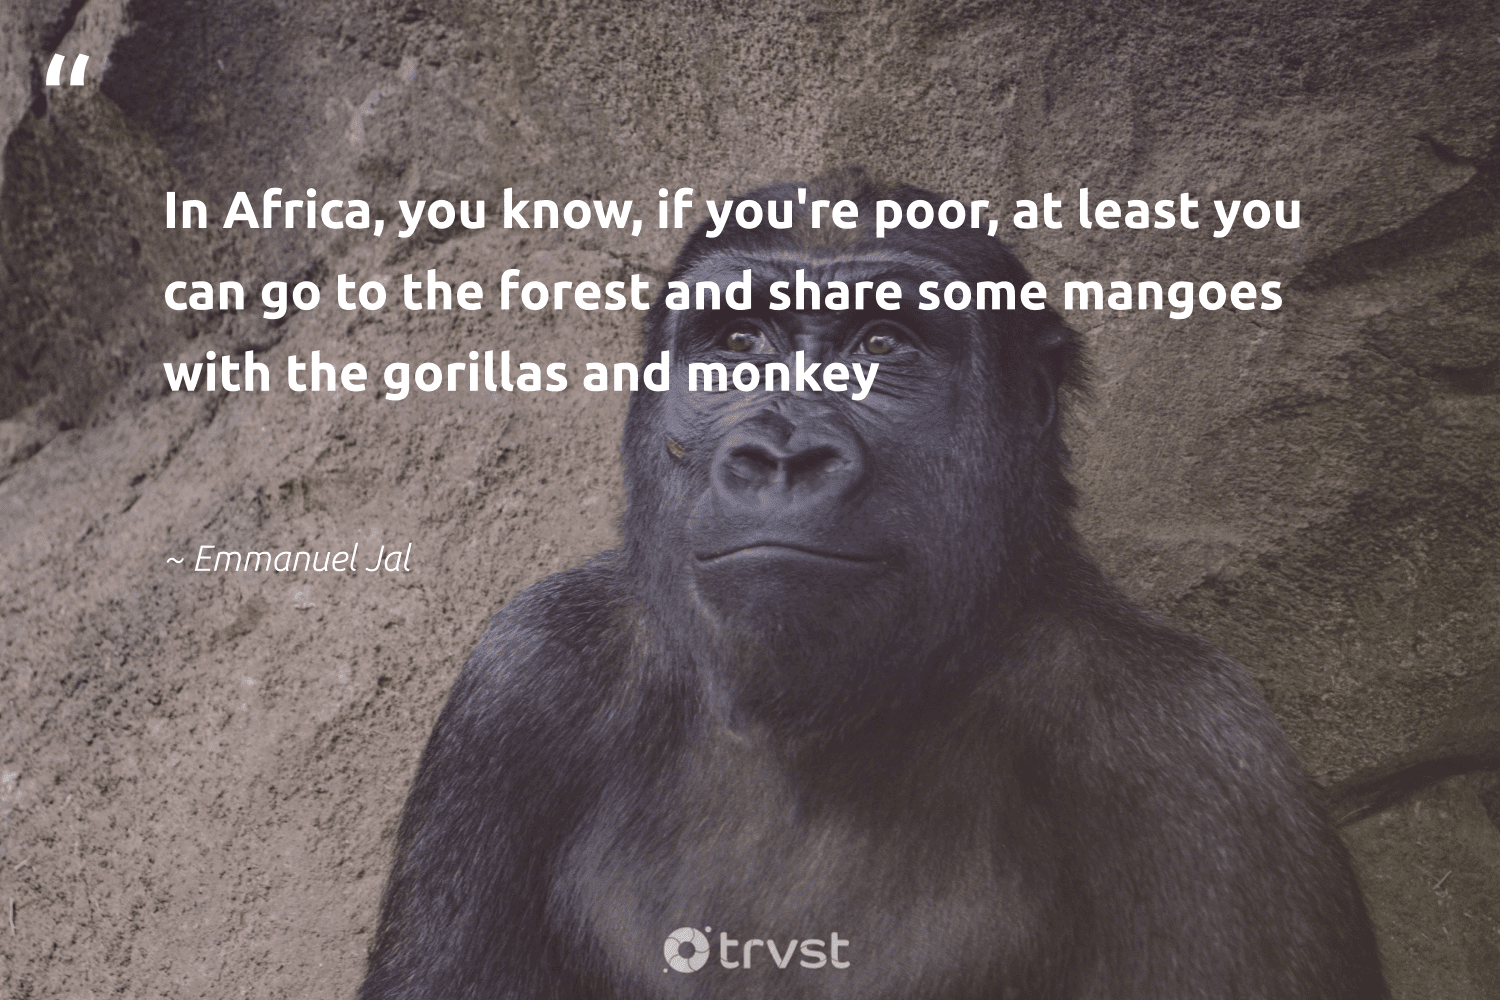 """""""In Africa, you know, if you're poor, at least you can go to the forest and share some mangoes with the gorillas and monkey""""  - Emmanuel Jal #trvst #quotes #africa #forest #poor #monkey #deforestation #wildlifeprotection #gogreen #bethechange #treeplanting #splendidanimals"""